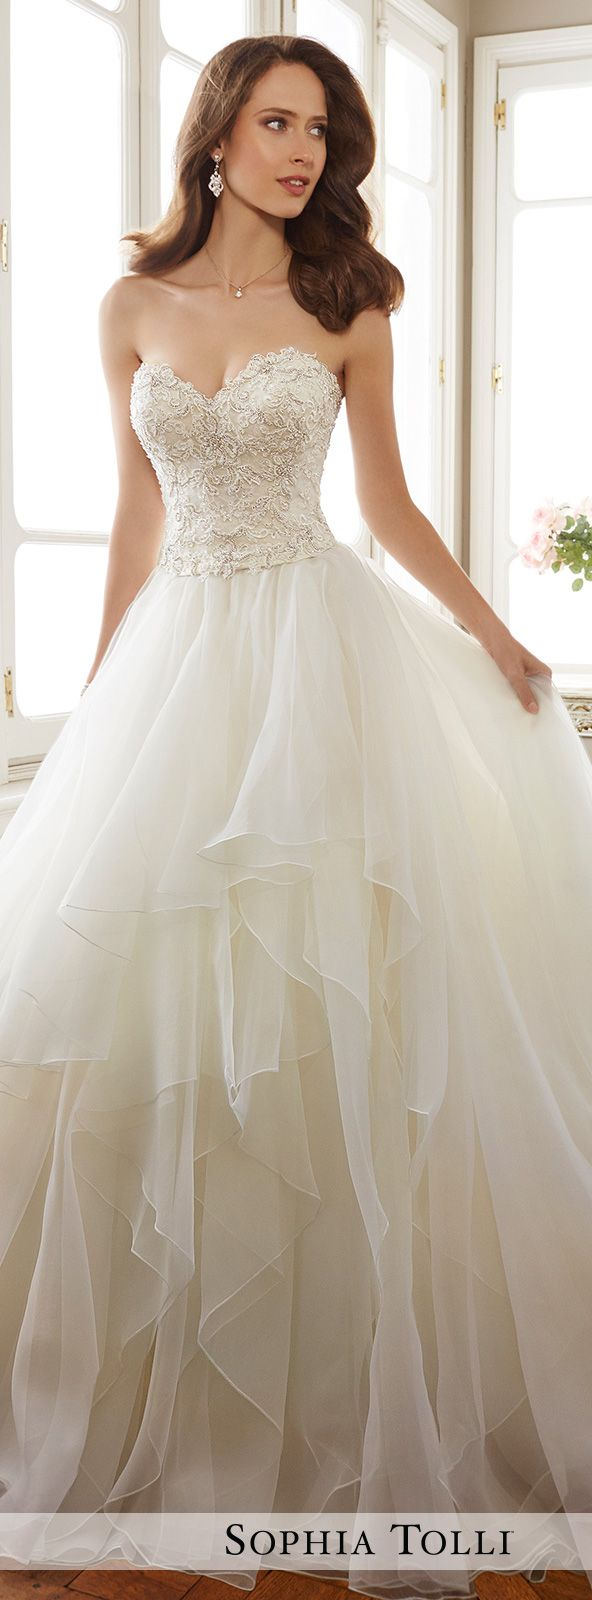 bridal collection wedding dressing Wedding Dress by Sophia Tolli Spring Bridal Collection Style No Y Tropez